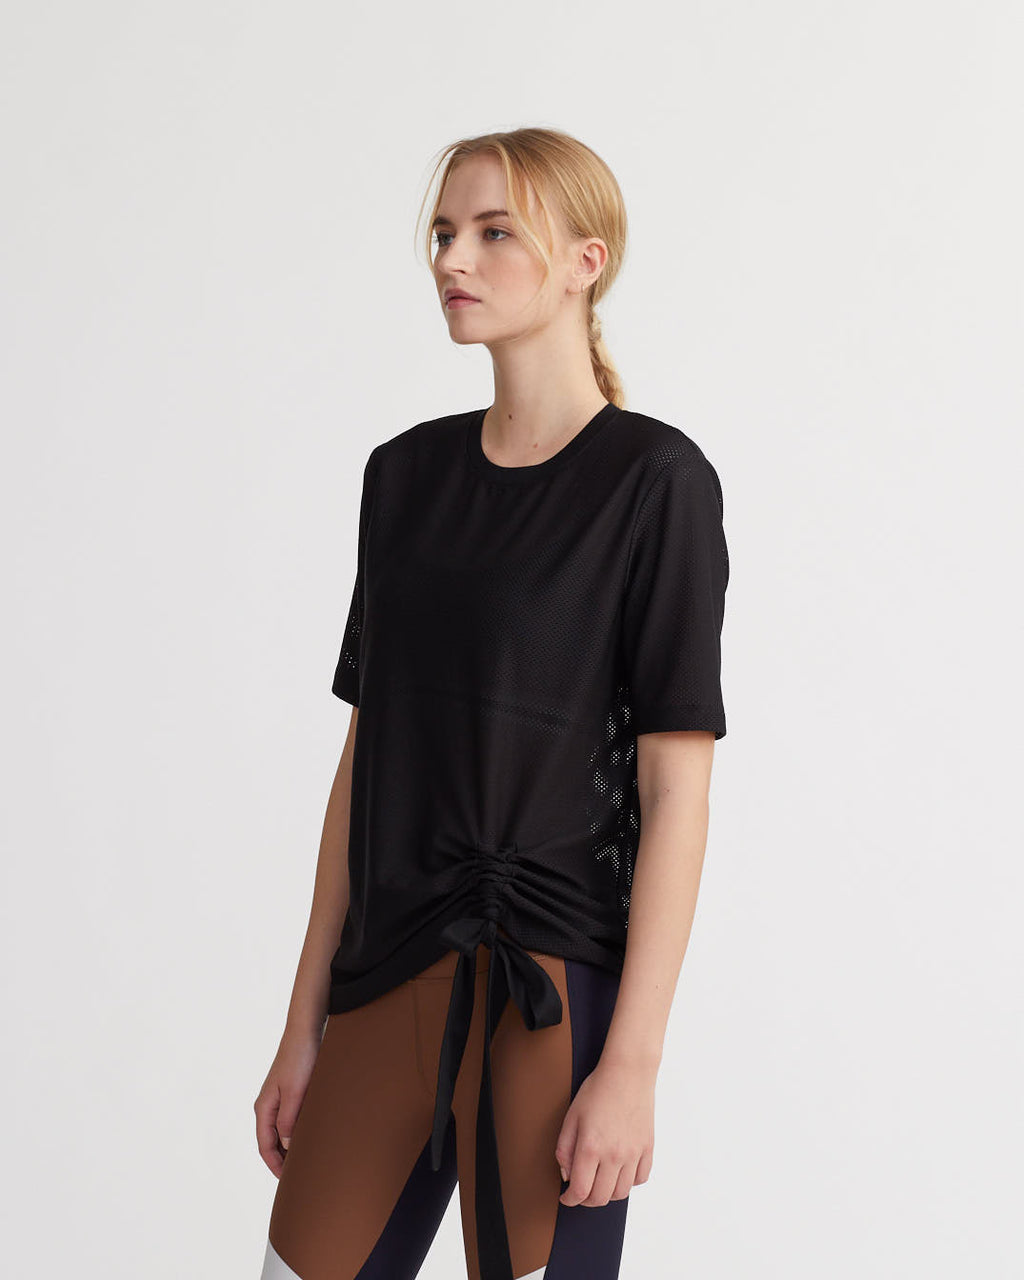 DEFOE TOP BLACK (MESH)